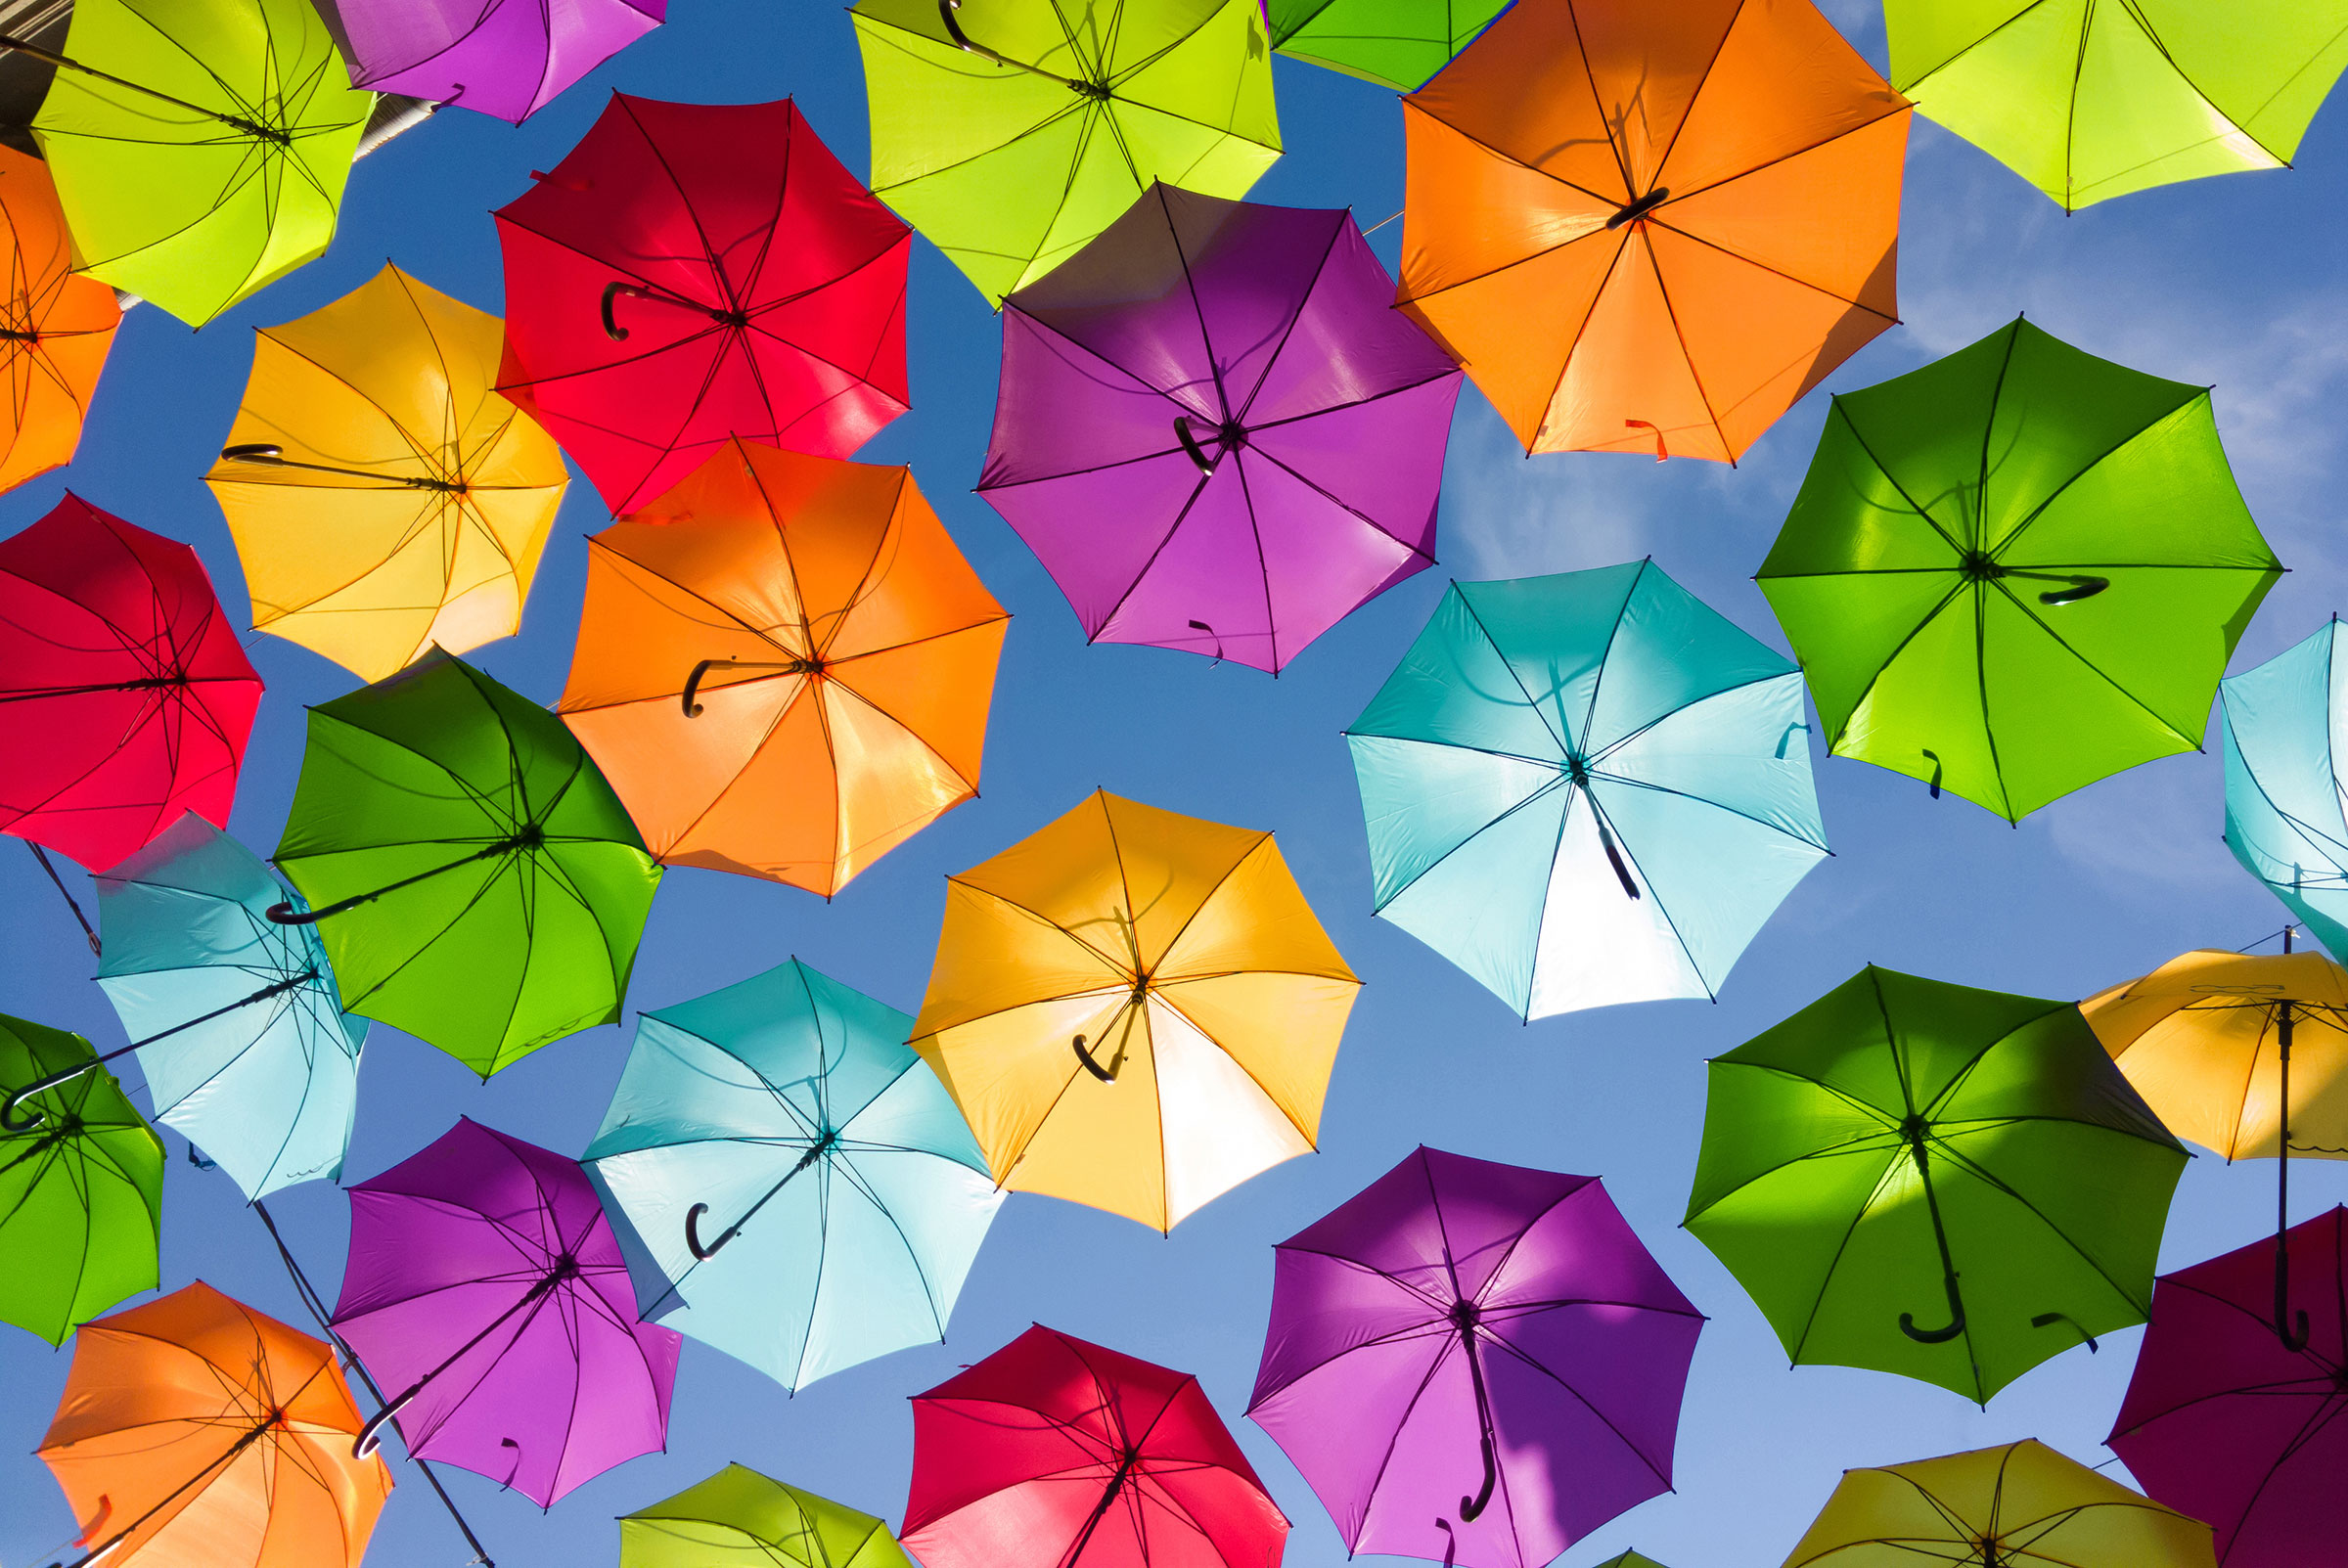 Colorful-umbrellas-in-the-sky